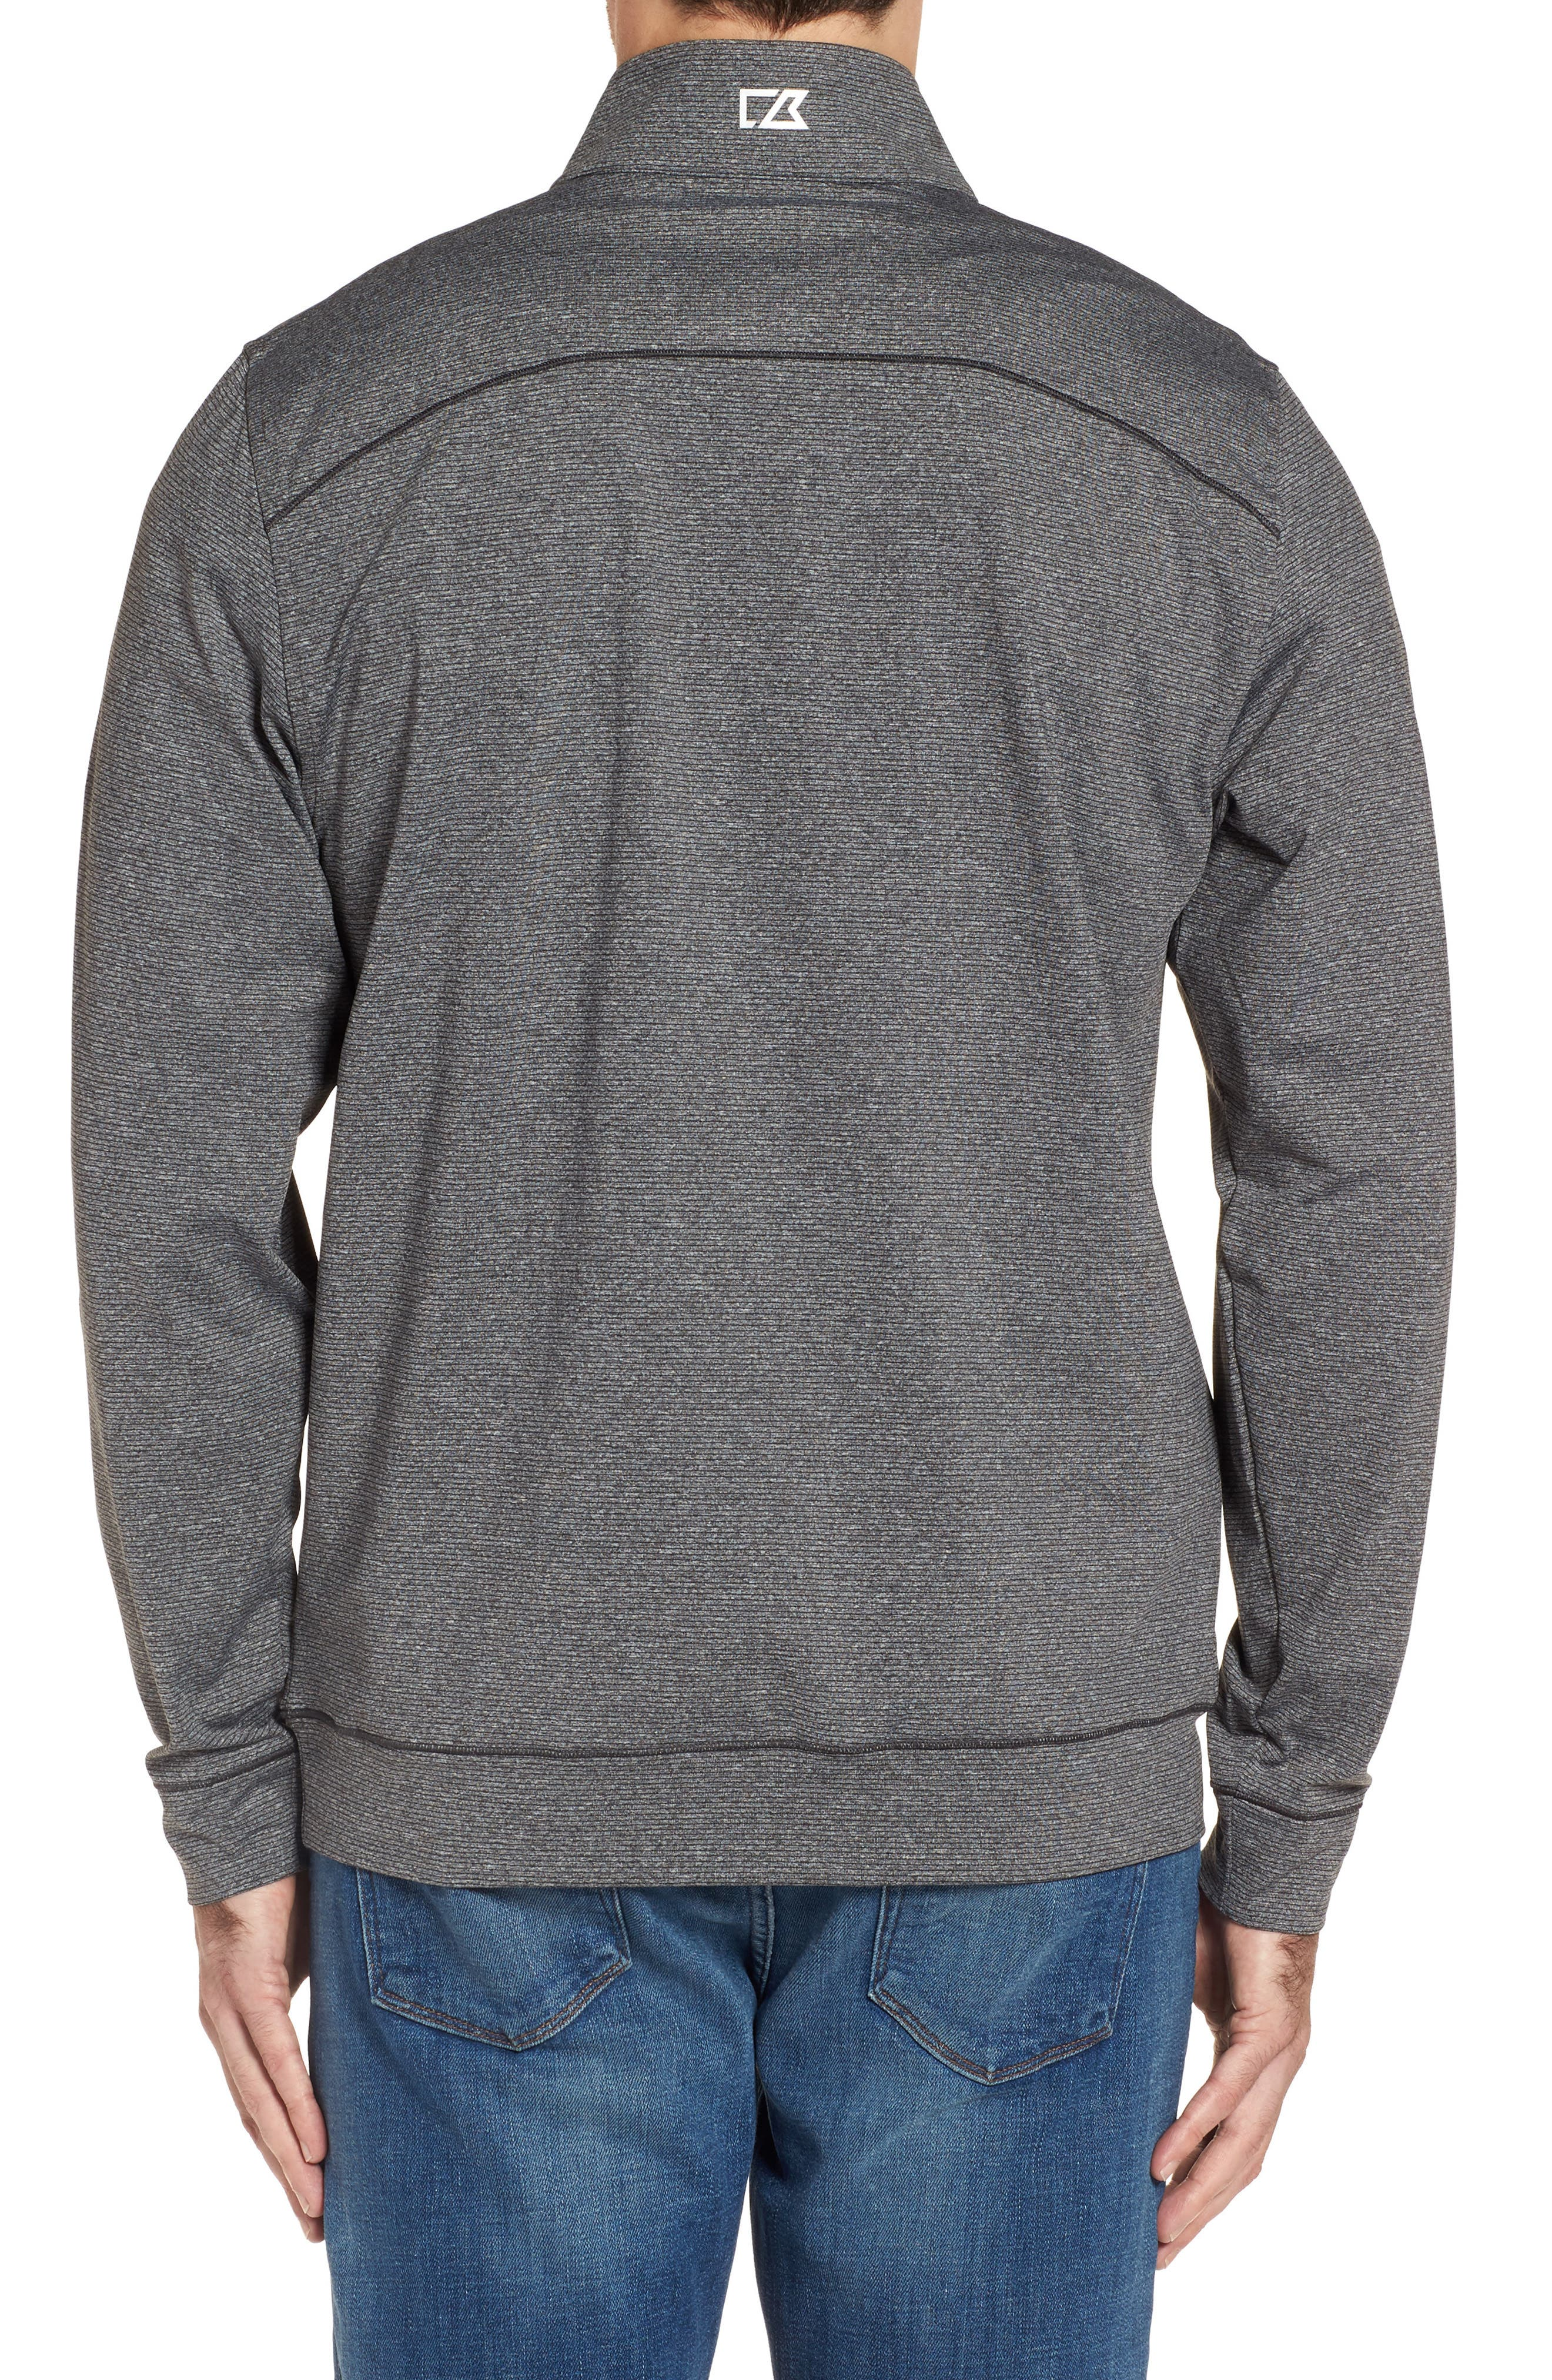 Shoreline - Pittsburgh Steelers Half Zip Pullover,                             Alternate thumbnail 2, color,                             Charcoal Heather